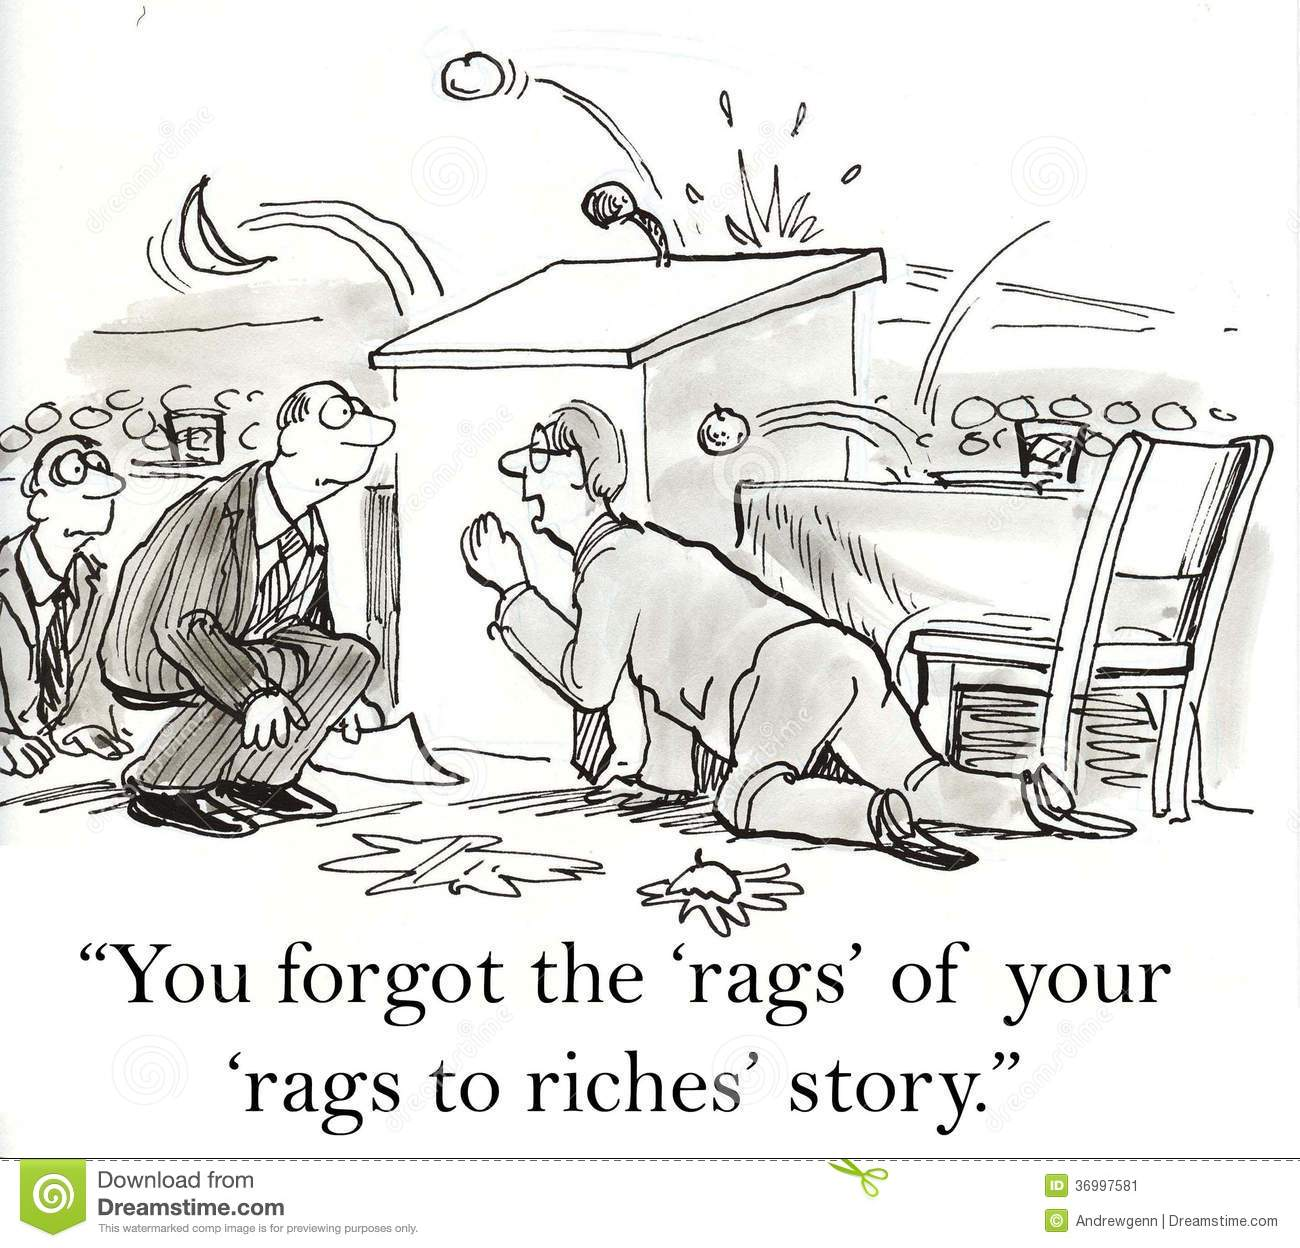 The 7 Types of Plots: Rags to Riches